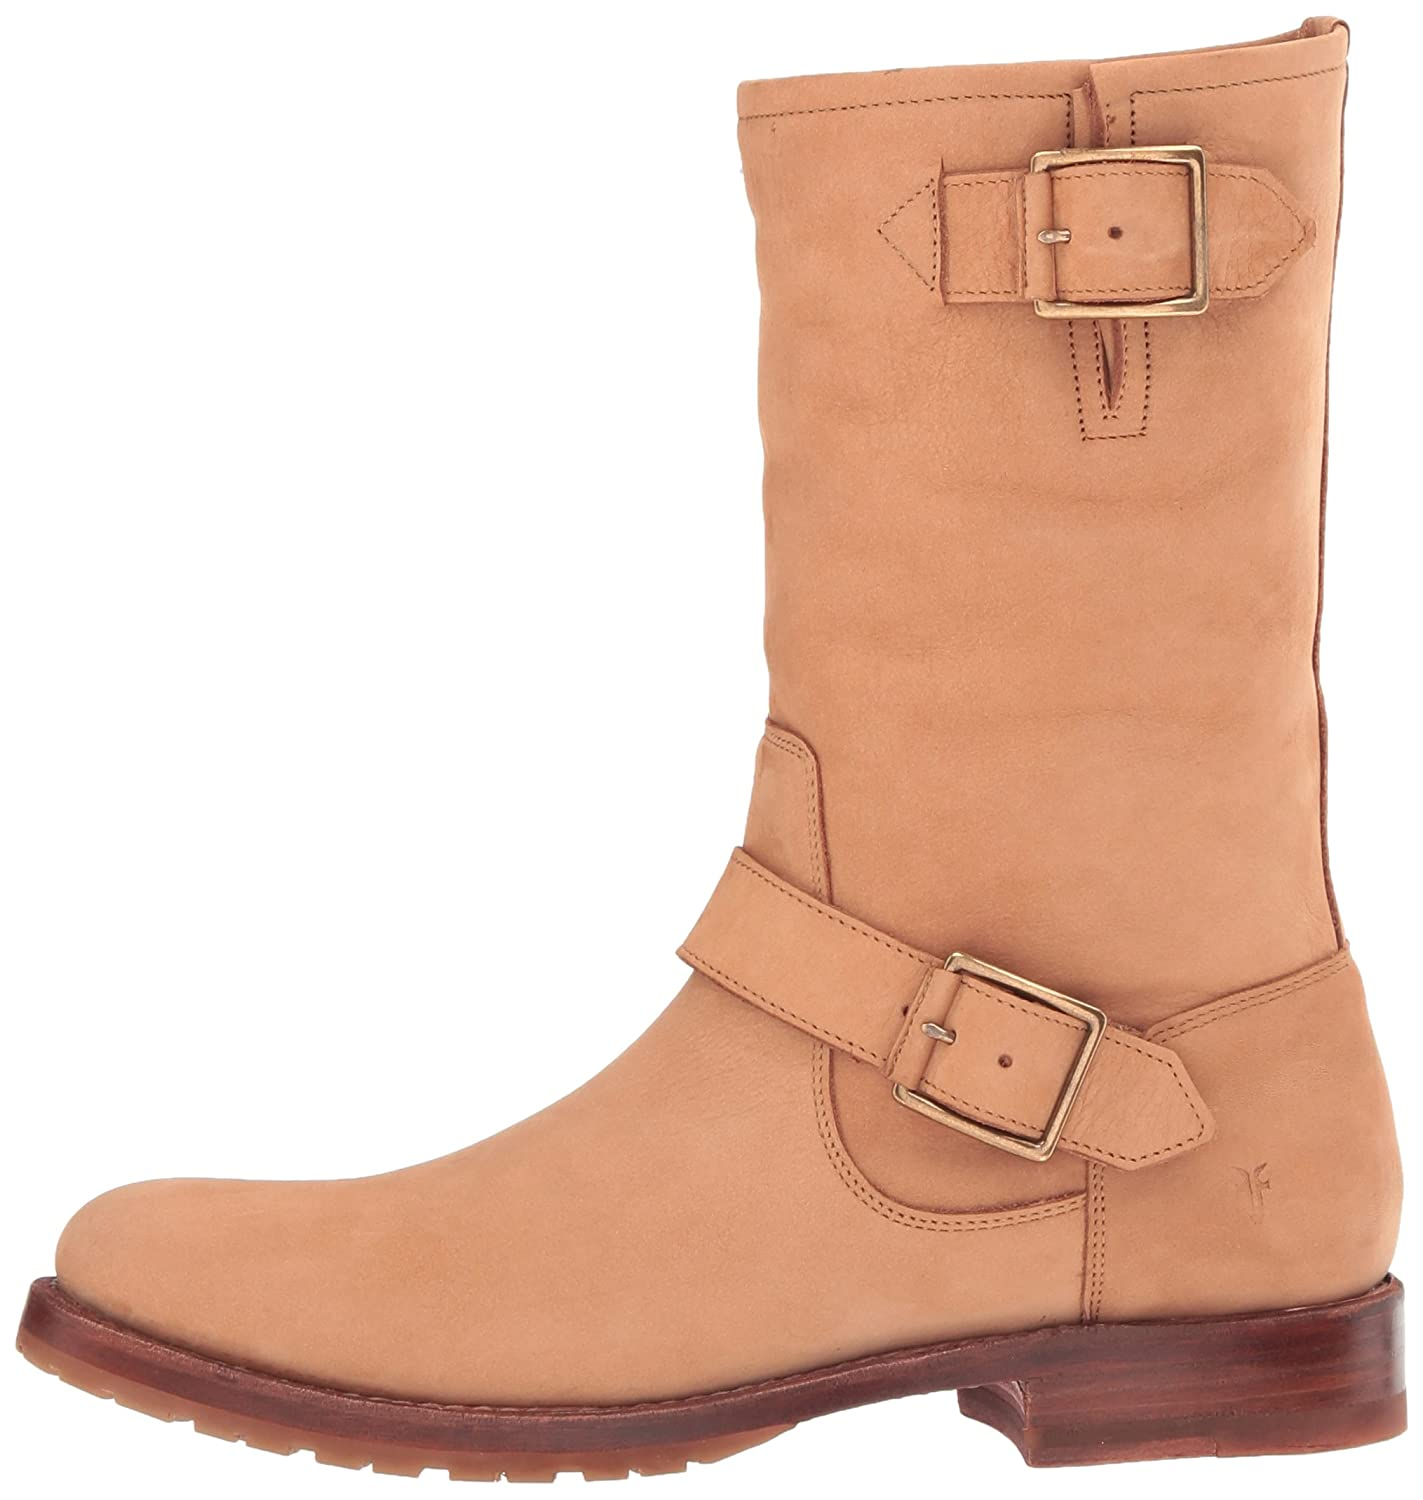 FRYE Women's Natalie Mid Engineer Boot B01H5KGWSG 9 B(M) US|Sand